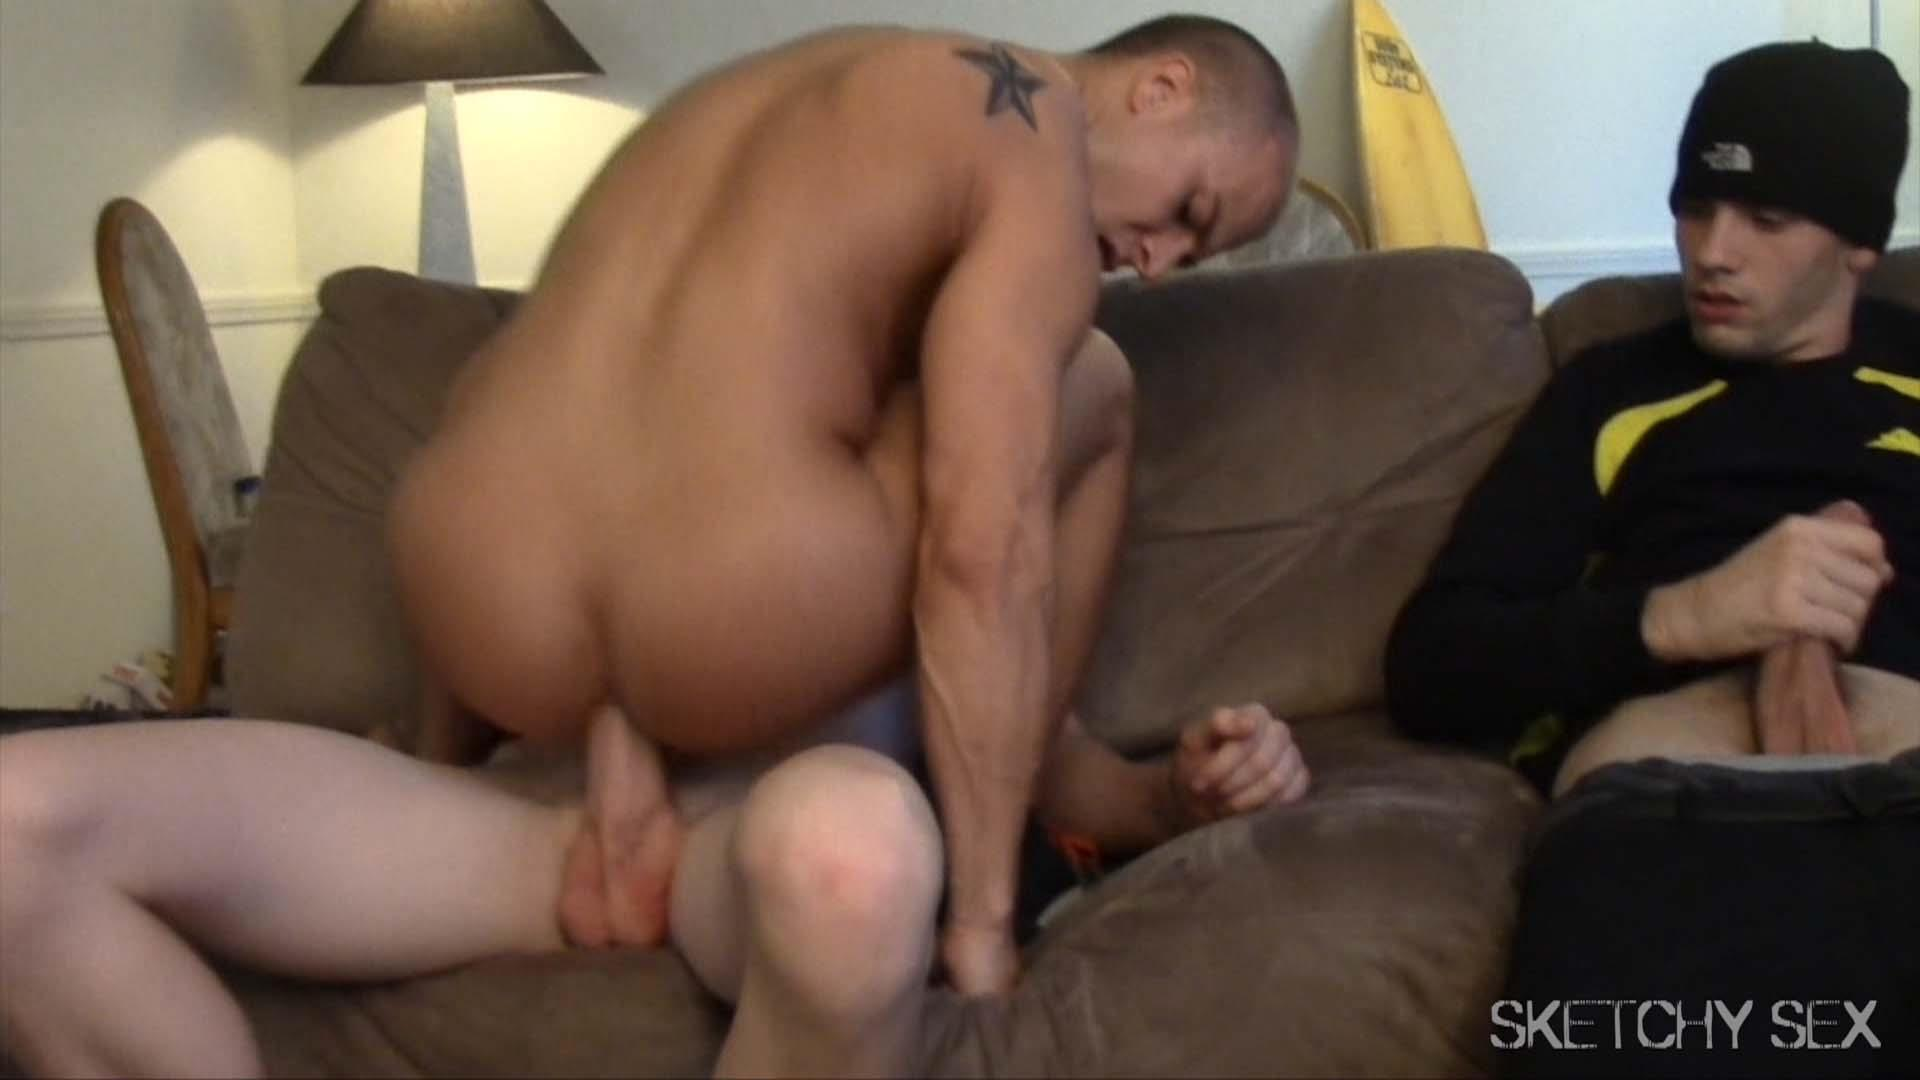 Sketchy-Sex-Download-Free-Bareback-Group-Sex-Video-Amateur-Gay-Porn-16 Cum Slut Muscle Jock Takes Anonymous Raw Loads